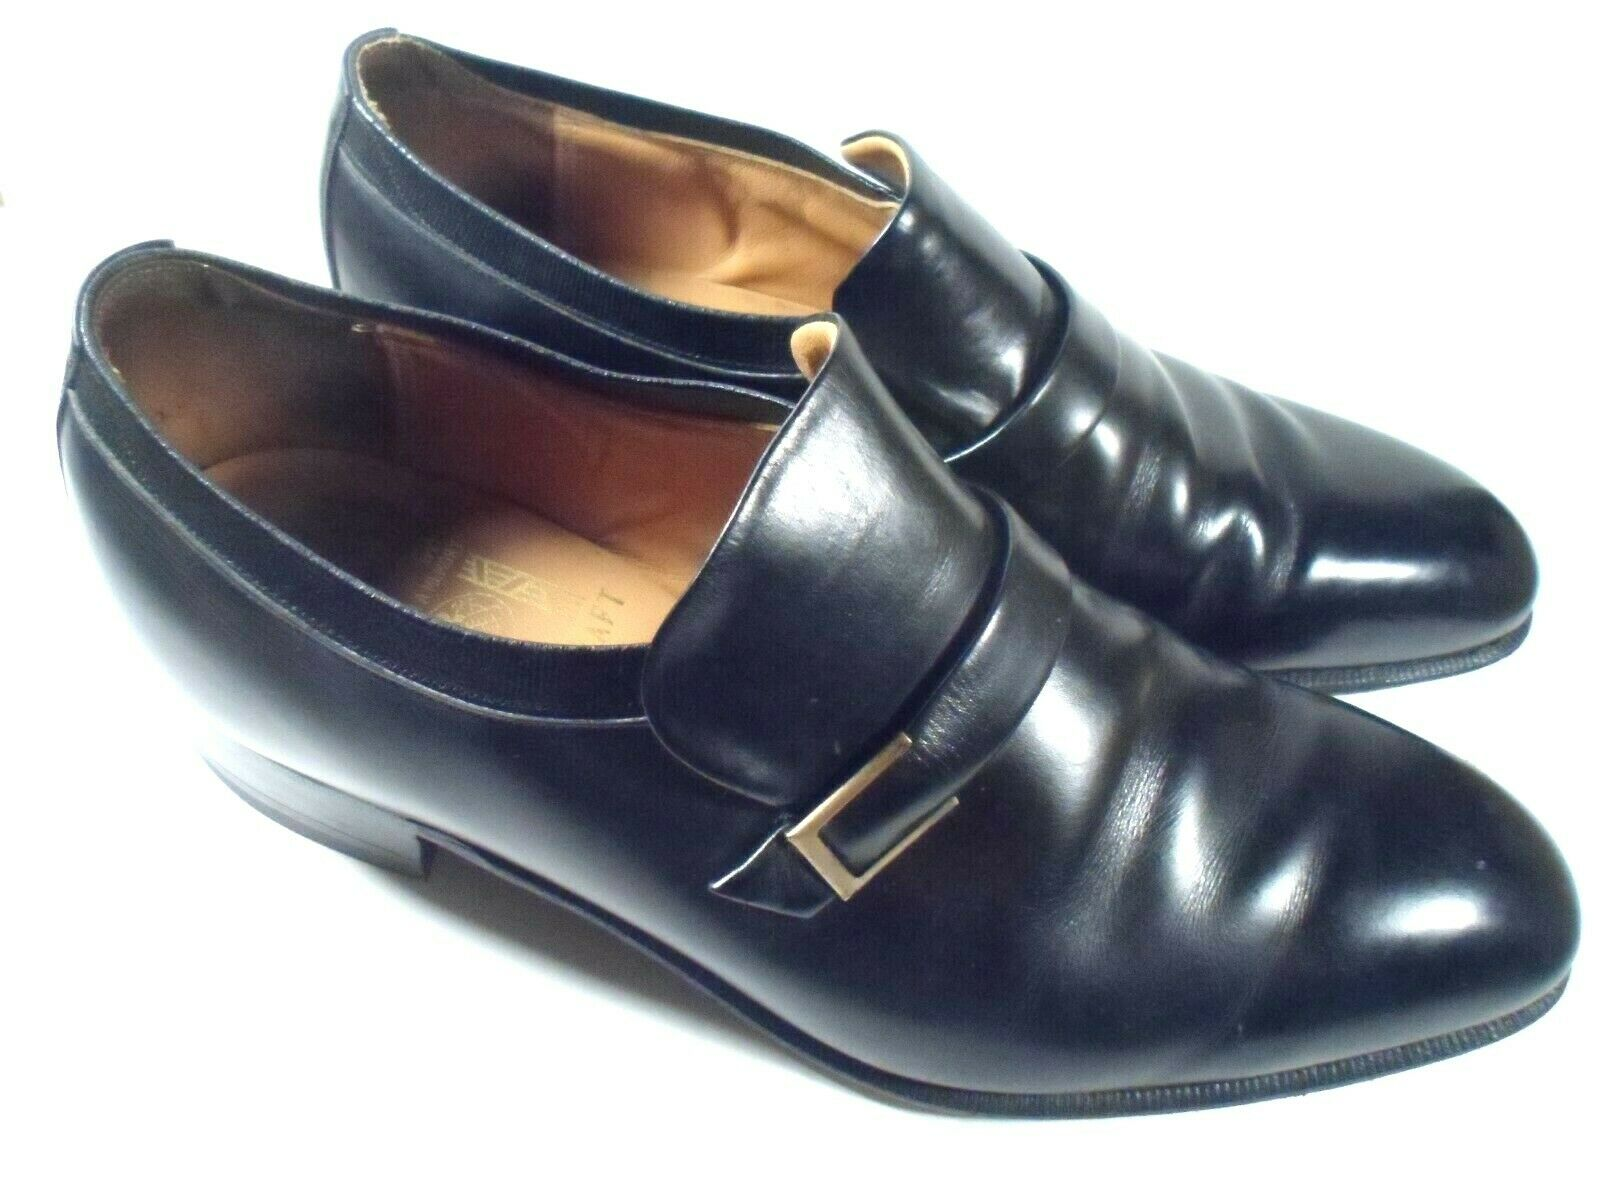 Johnston & Murphy SZ 11 D B Mens Black Leather With Buckle Slip On